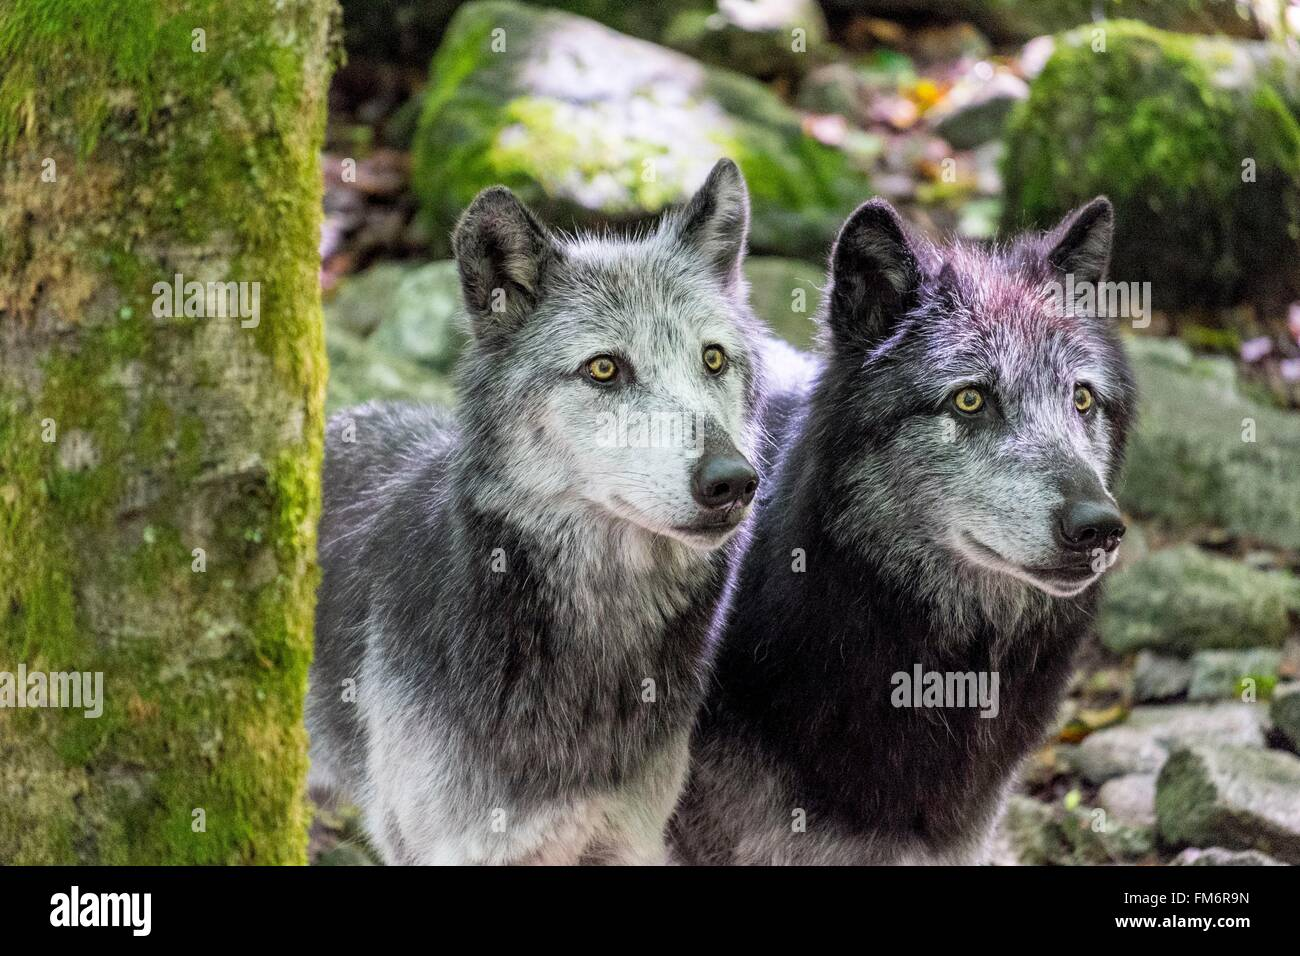 France, Ariege, Orlu, home of wolves, wolf Poland - Stock Image